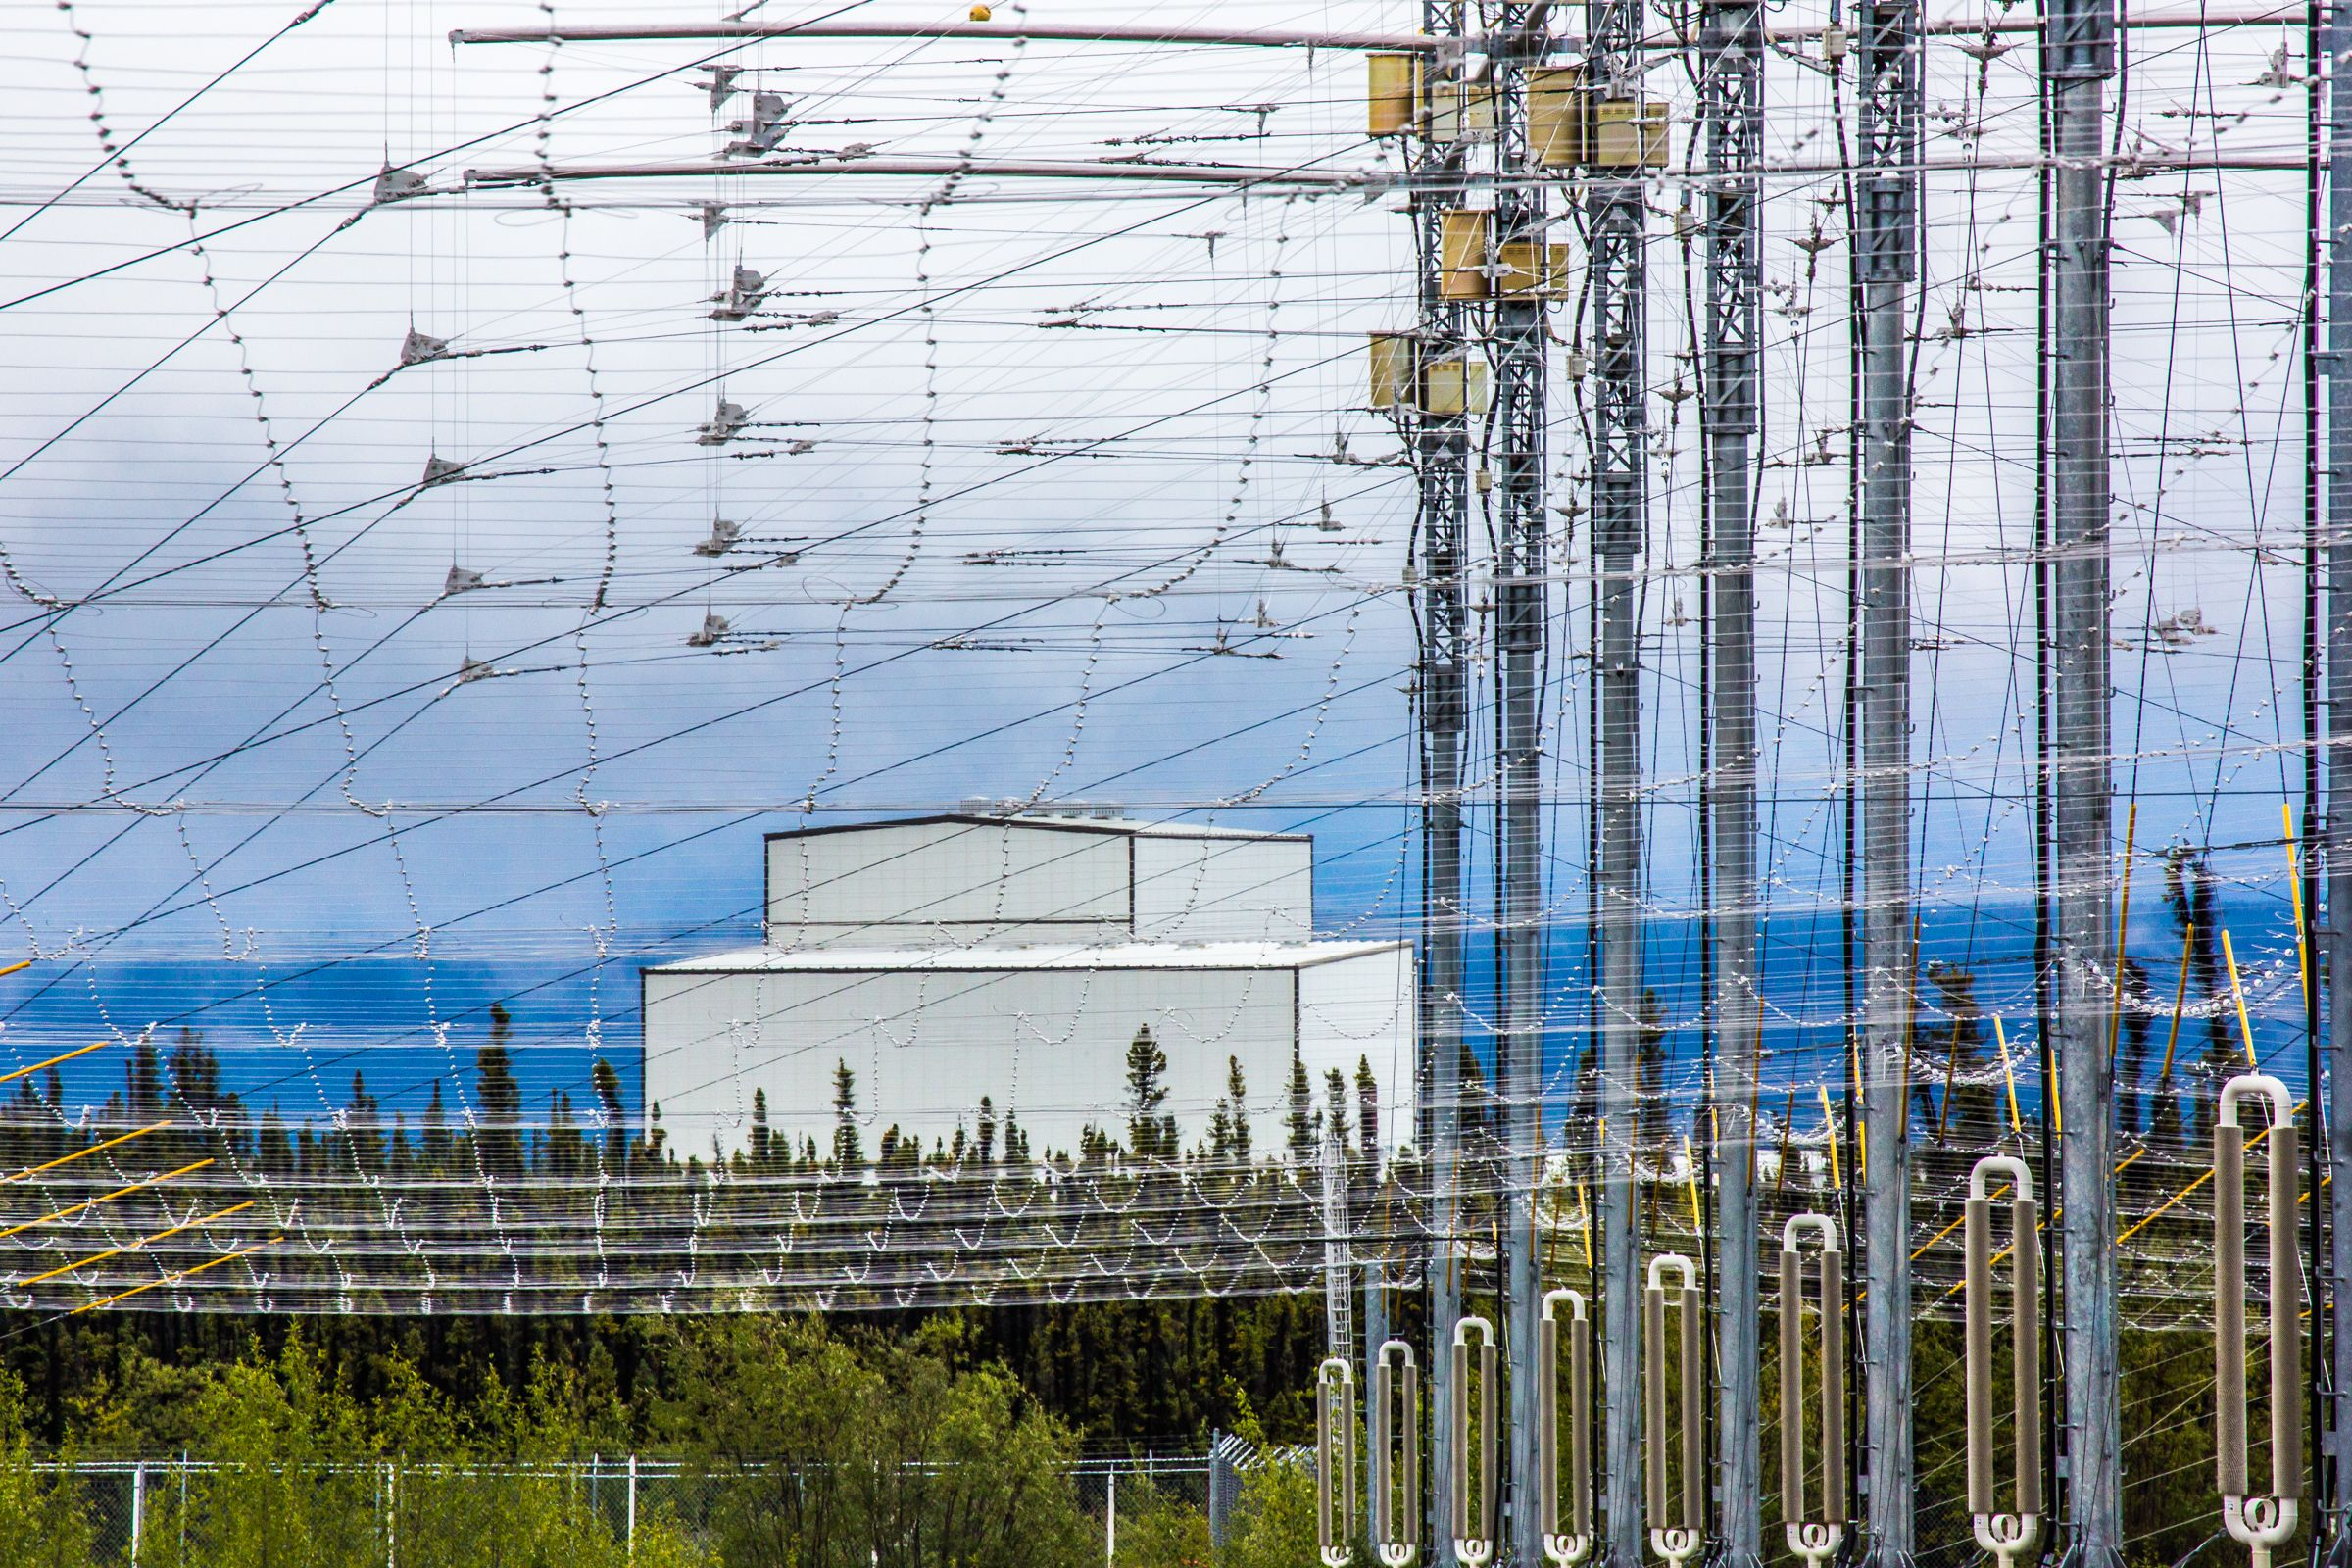 China's Giant Ionosphere-Zapping Radar Is a Defense System Masquerading as Science